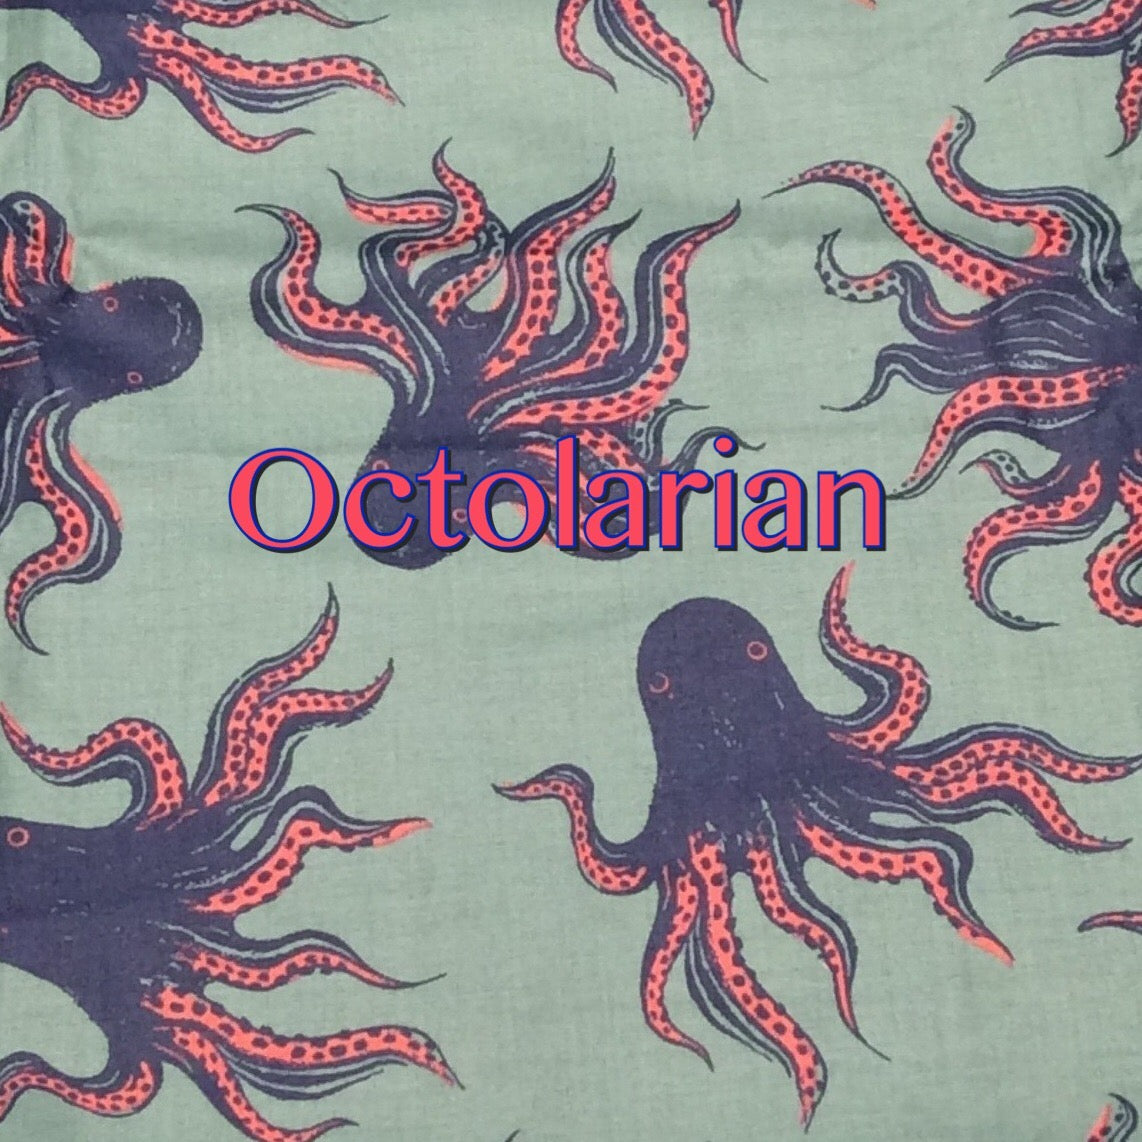 Octolarian - Quilter's Cotton